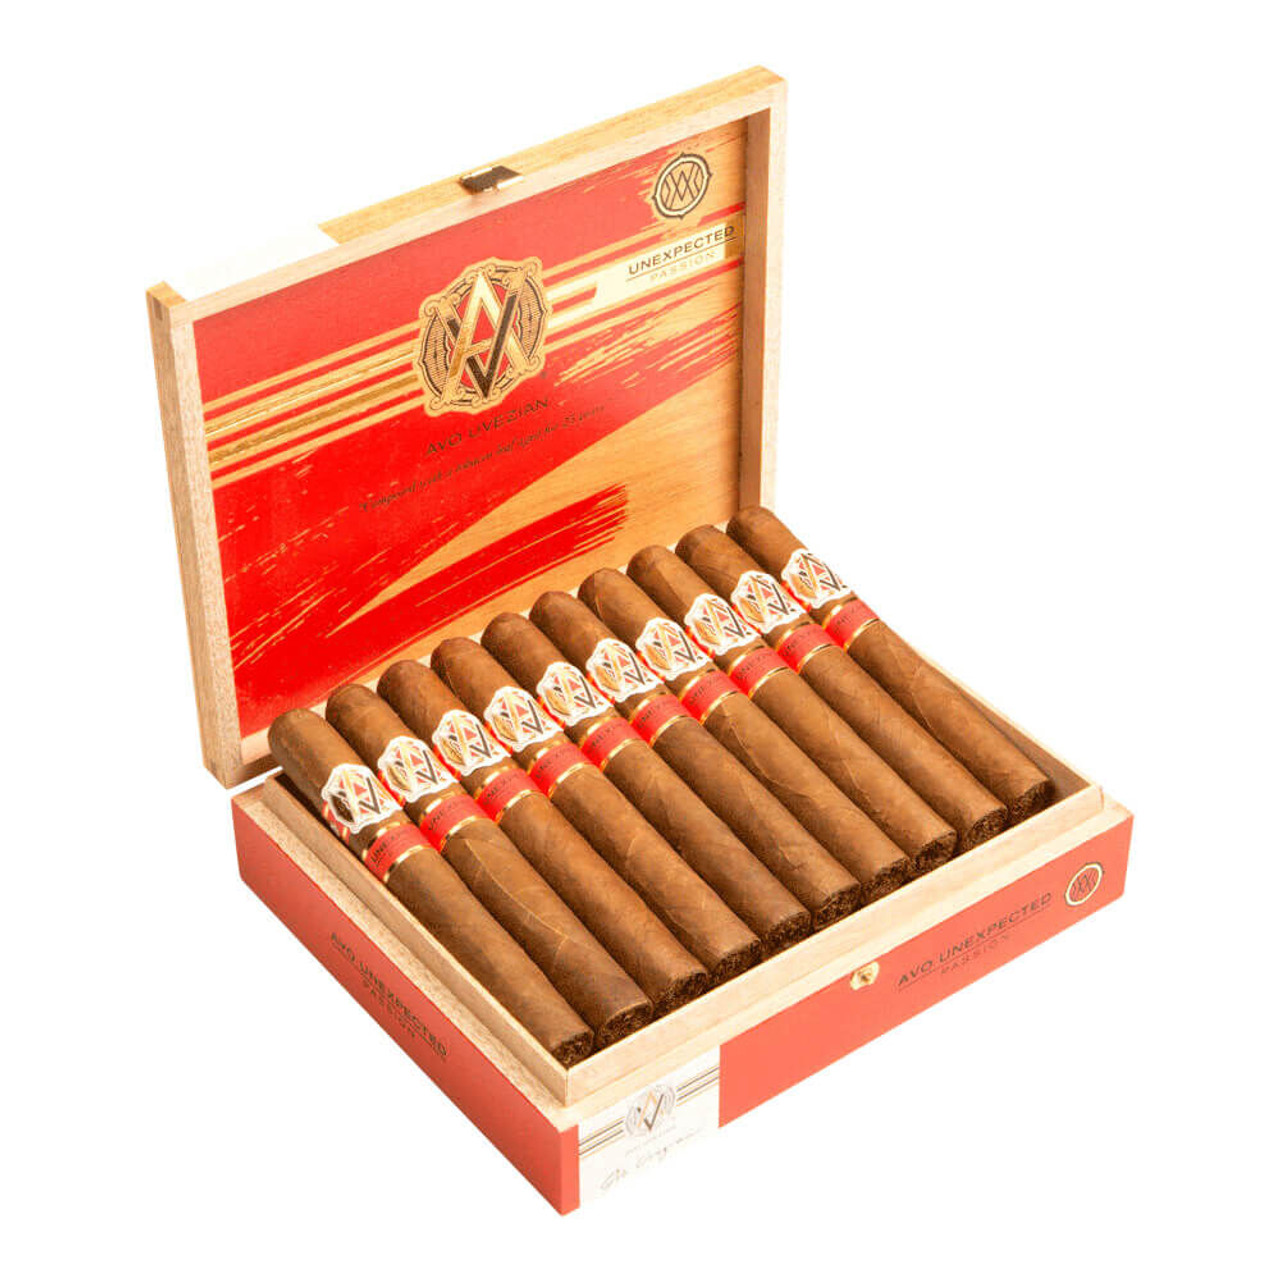 AVO Unexpected Series Passion Cigars - 6.0 x 50 (Box of 20)